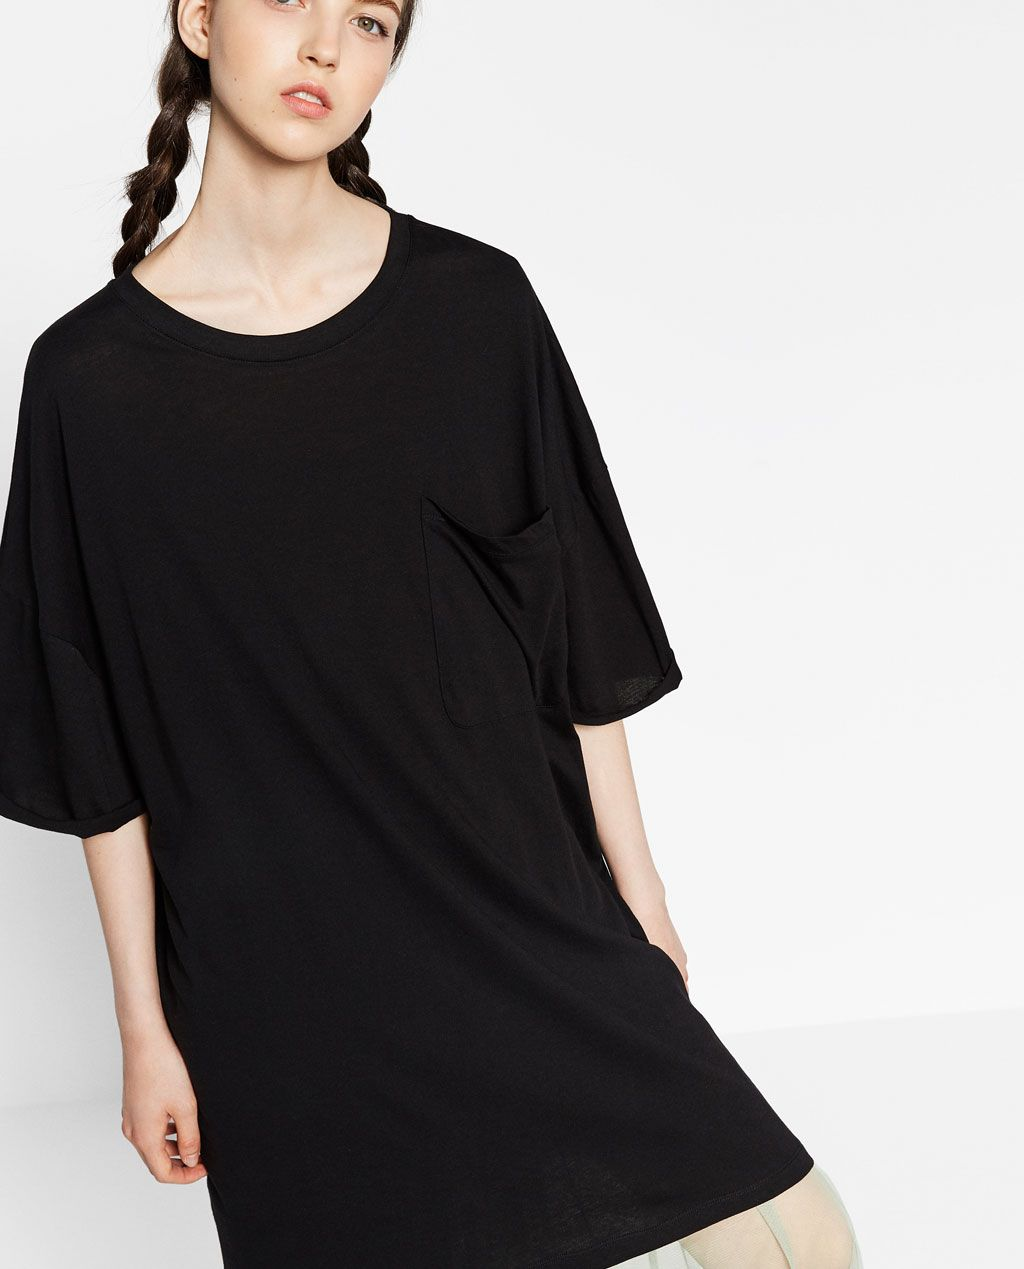 afb7d63777 ZARA - WOMAN - OVERSIZED T-SHIRT DRESS